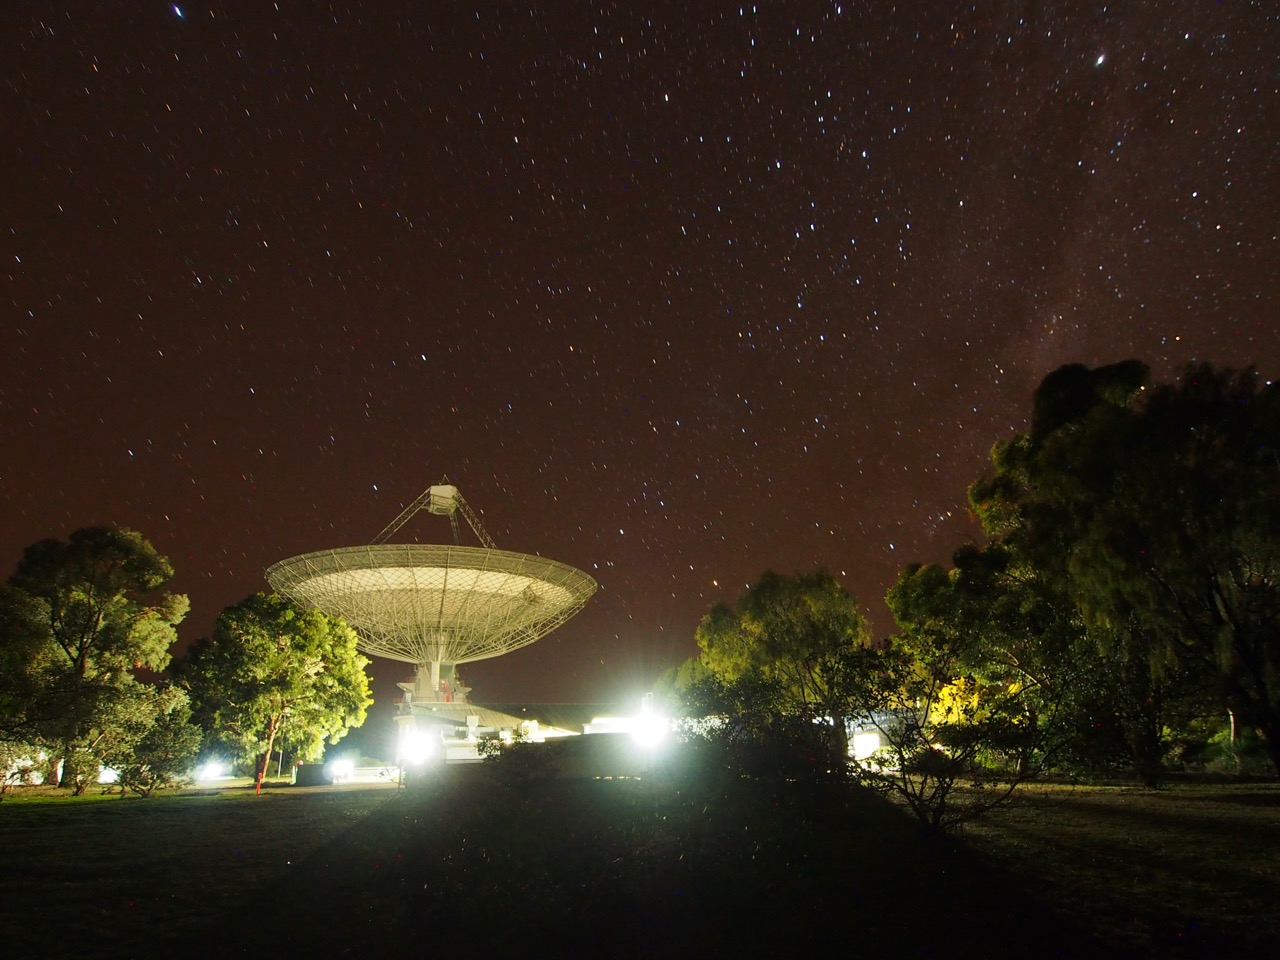 The Dish, Parkes NSW